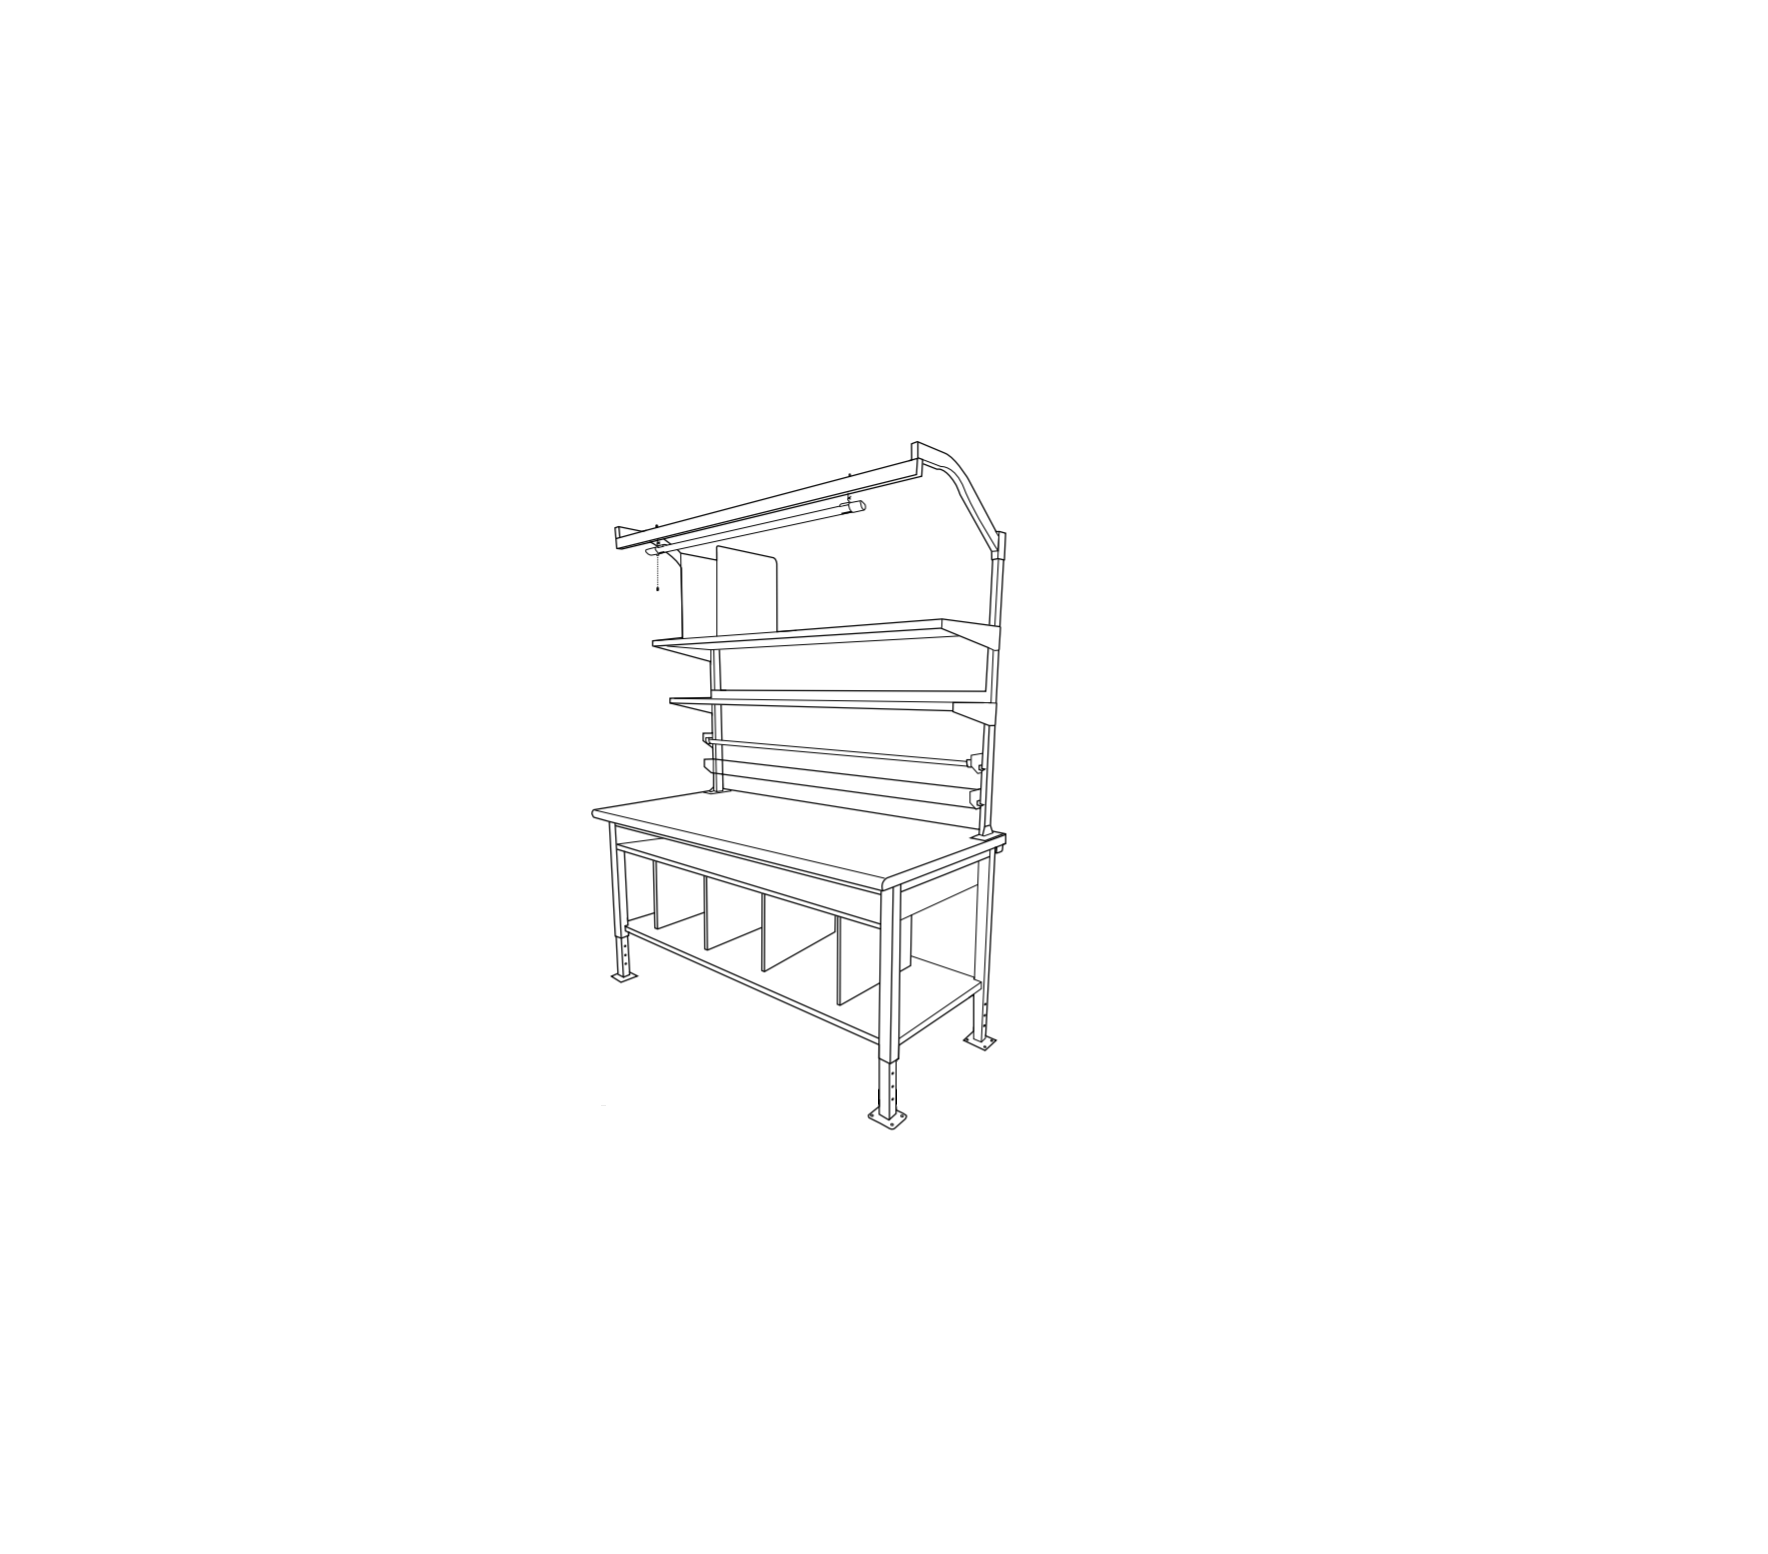 ULINE H-7630,H-7631 Packing Station Installation Guide - Manuals+